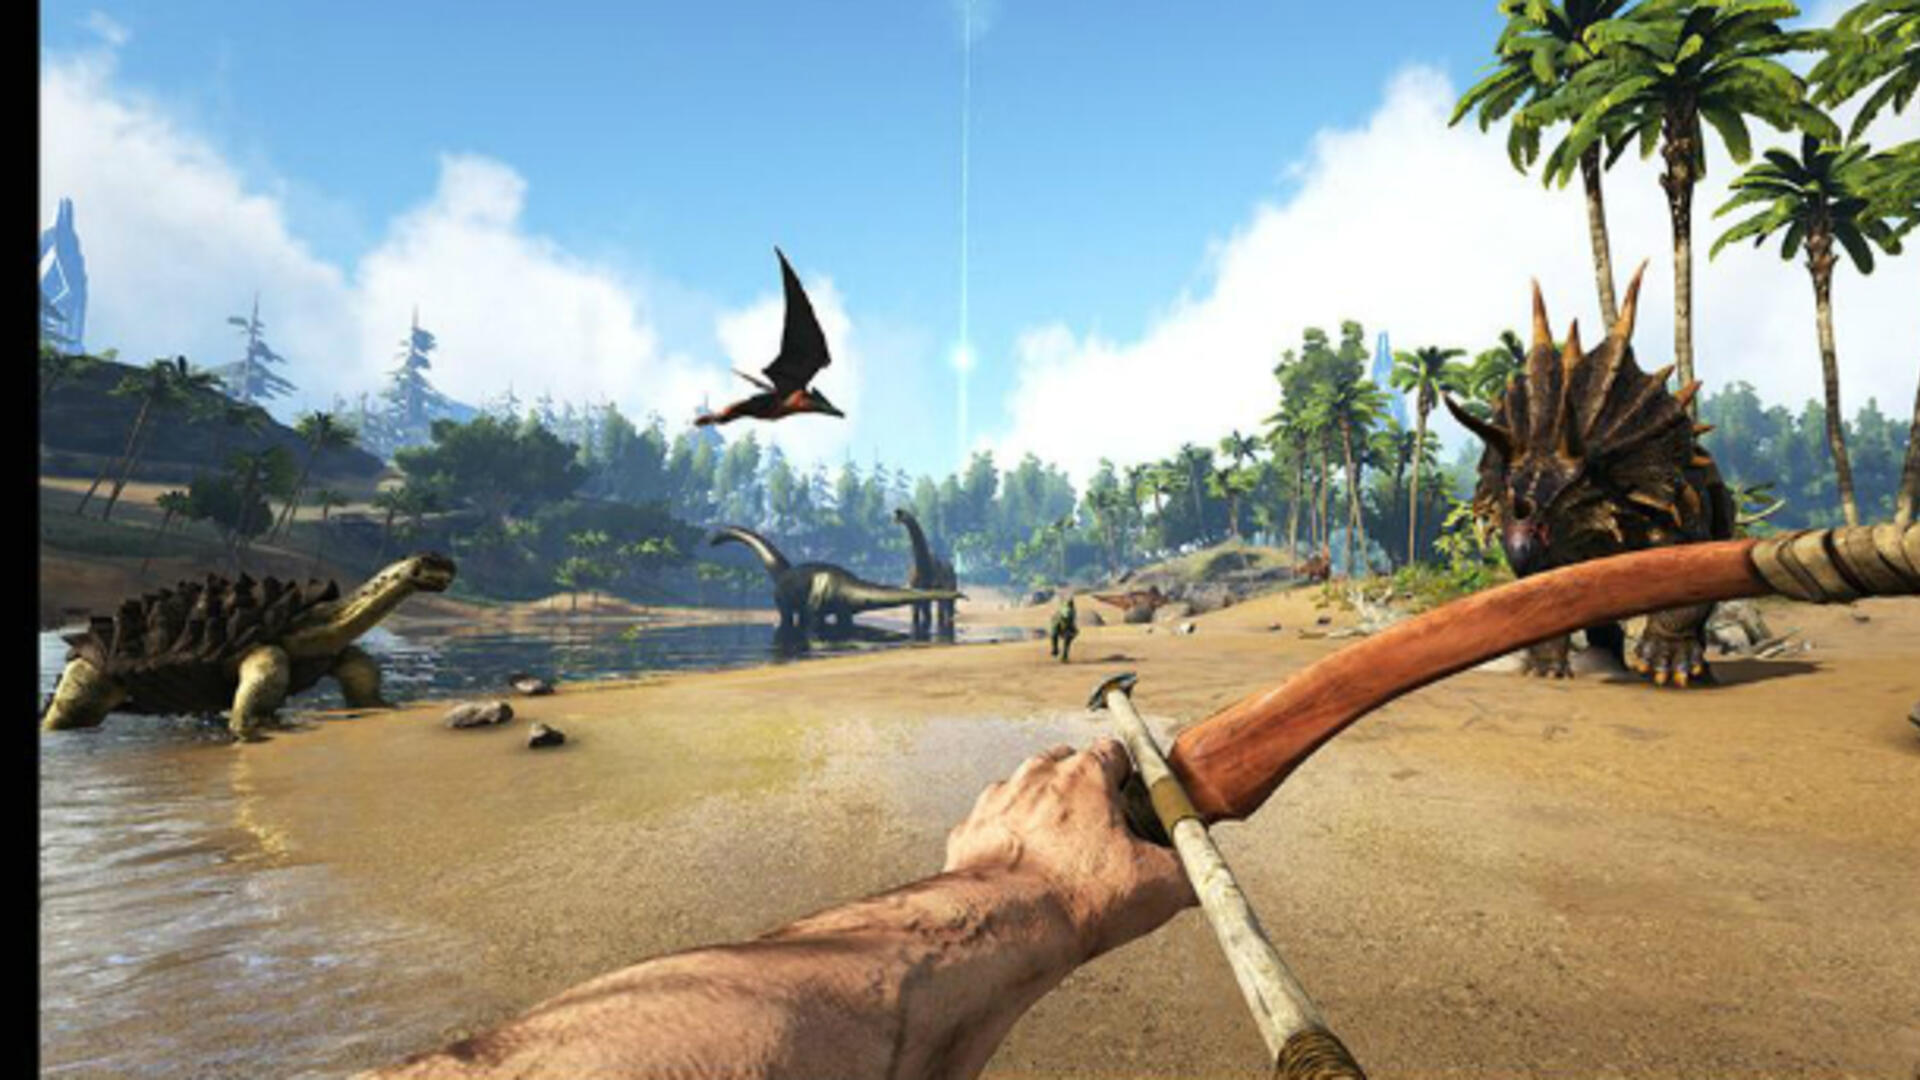 Ark: Survival Evolved on Switch: Is it Really a Disaster?